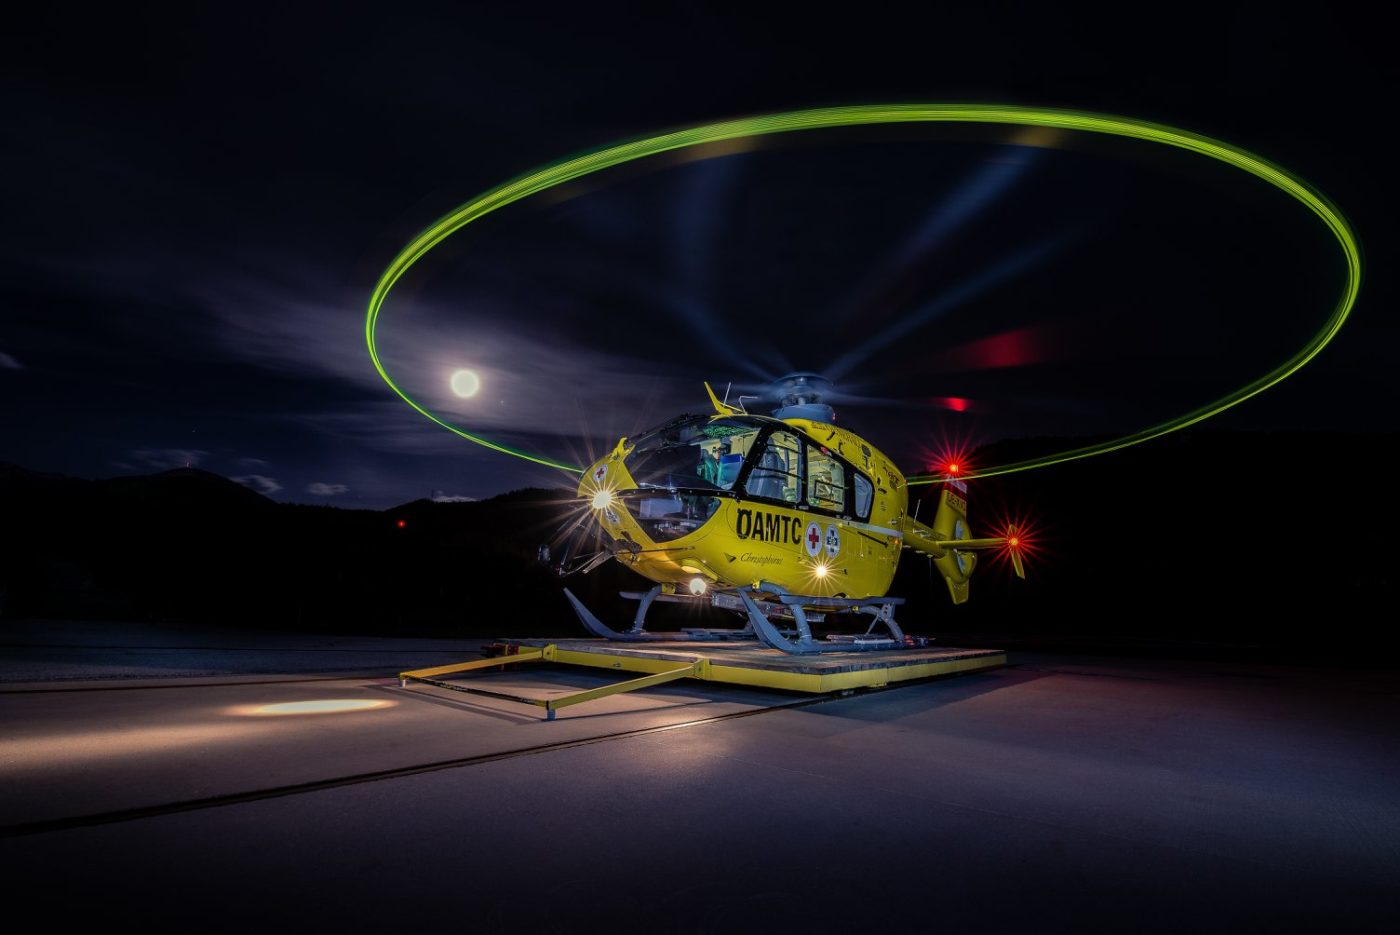 Christophorus 1, an Airbus H135 operated by OAMTC, lights up the night in Innsbruck, Austria. Photo submitted by Jorg Schnell